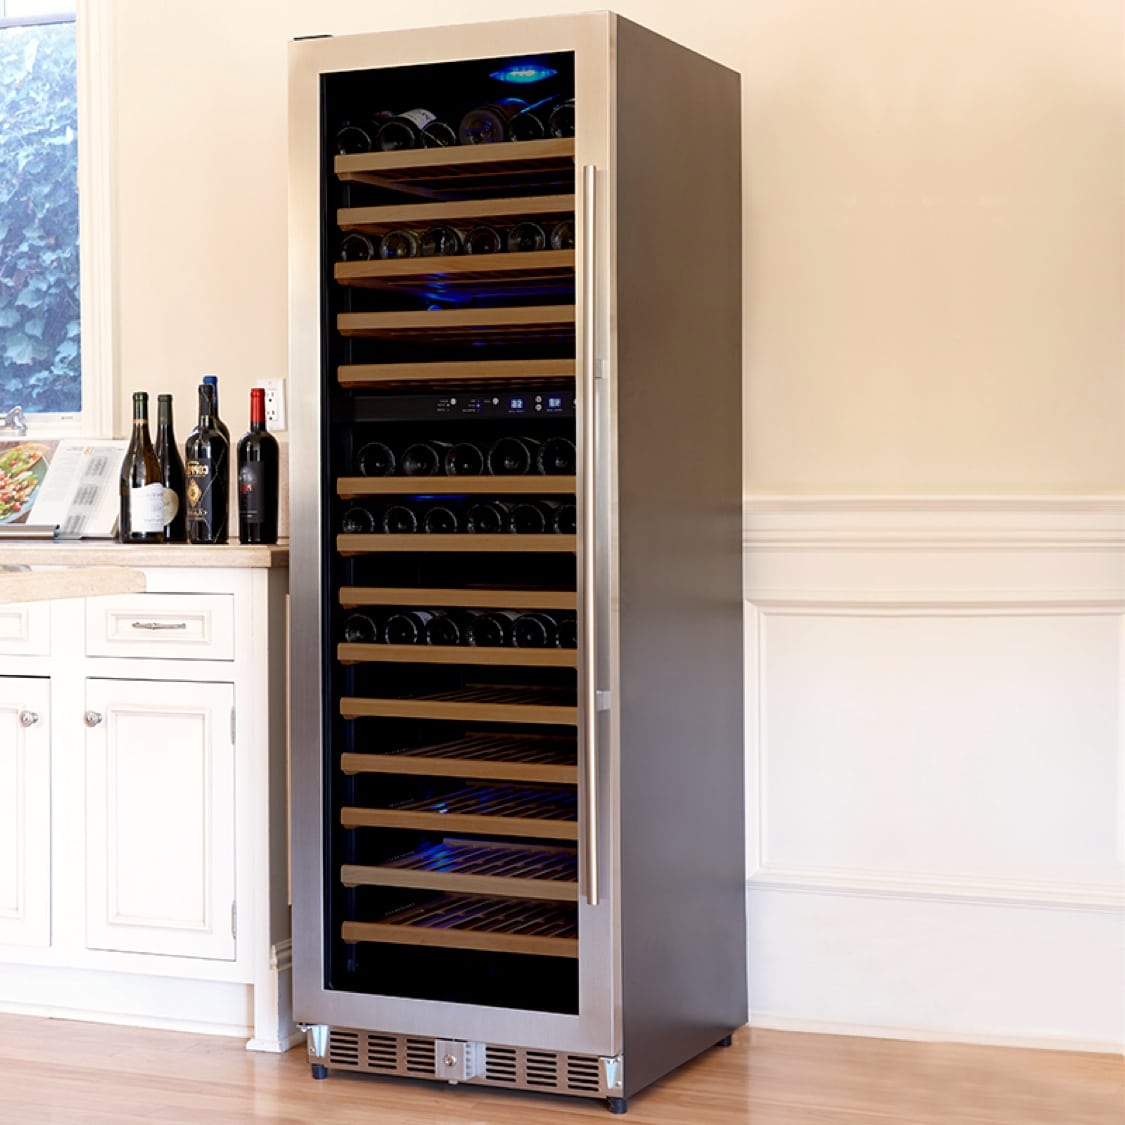 Click here to see more loft/vault styled styled wine cabinets